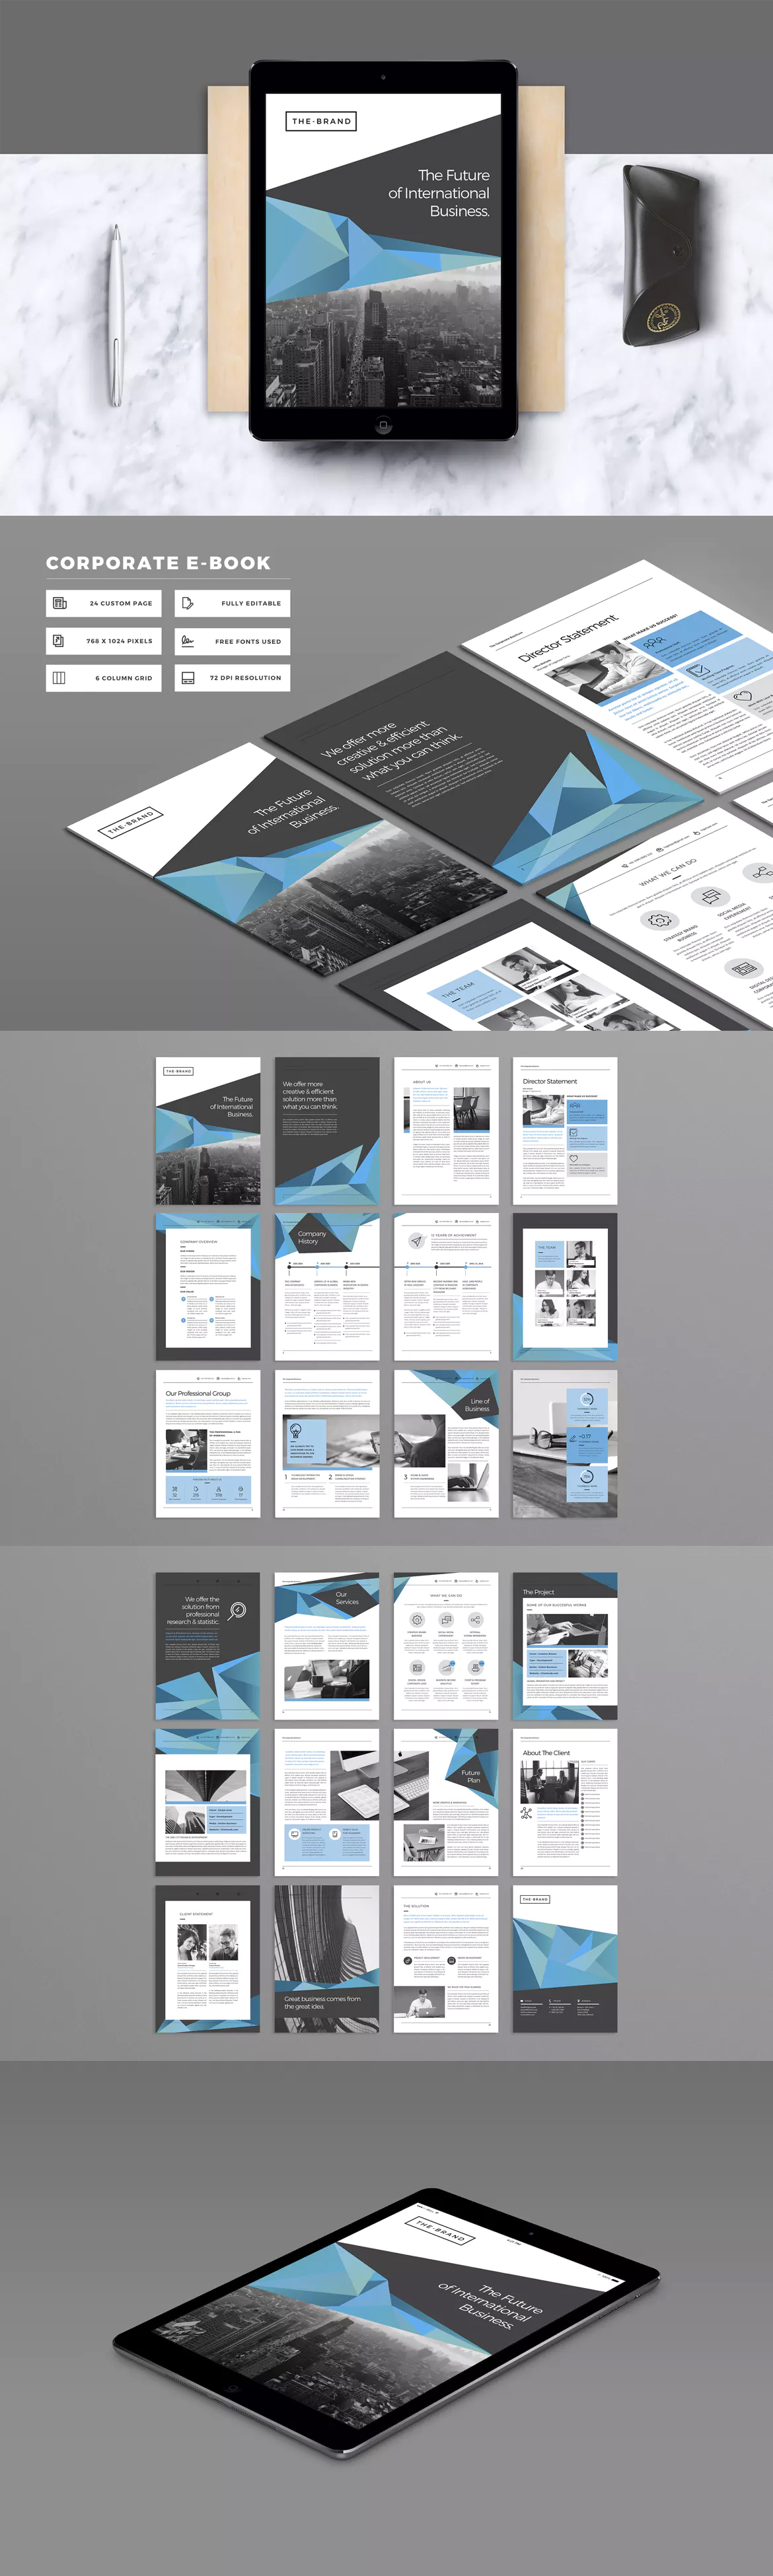 Corporate E-Book Template InDesign INDD - 24 Pages | e-Publishing ...